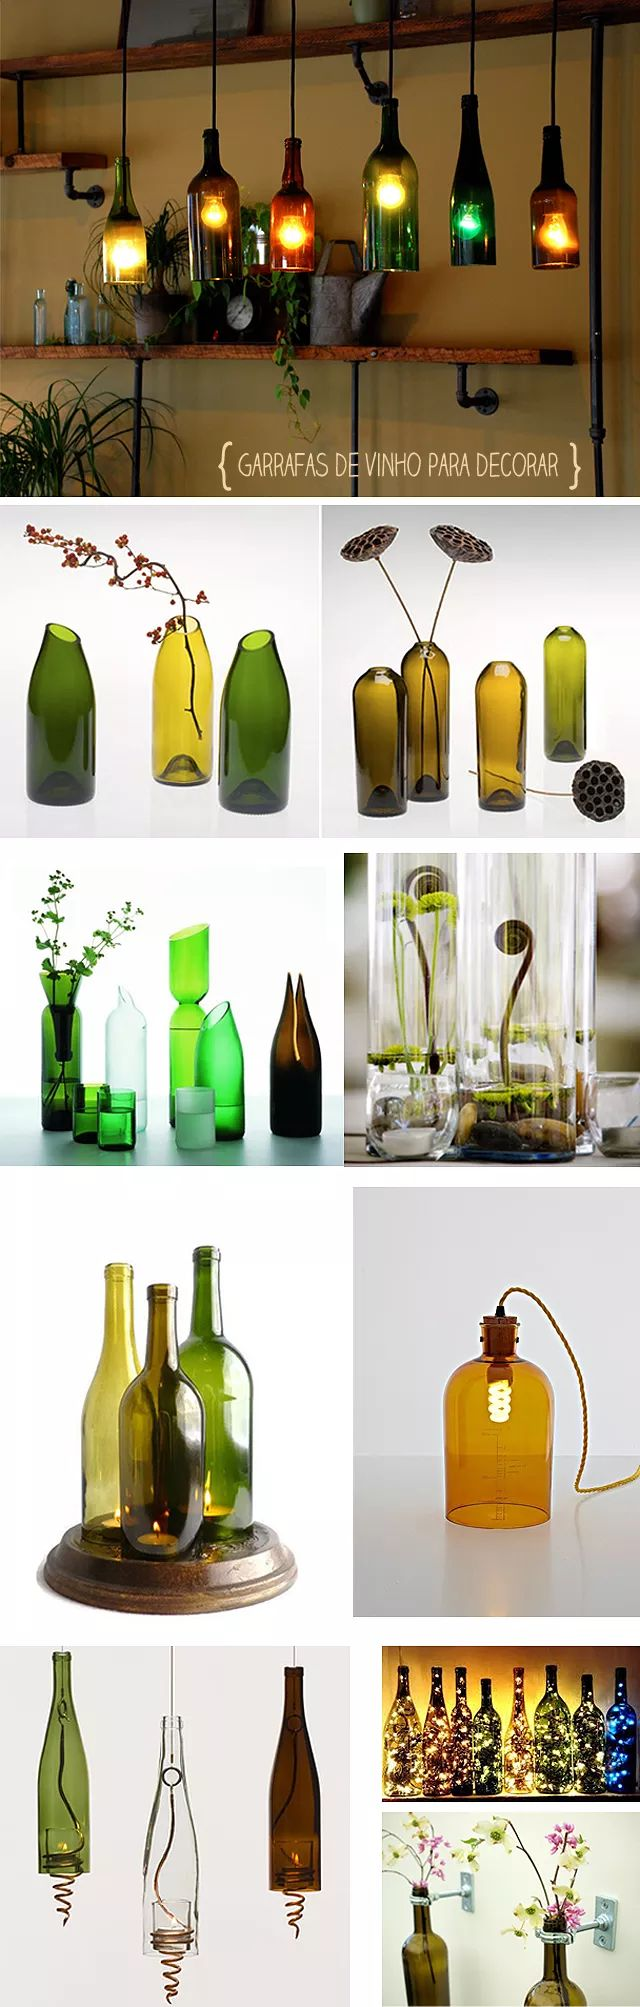 best images about vidros on pinterest rustic lighting jars and